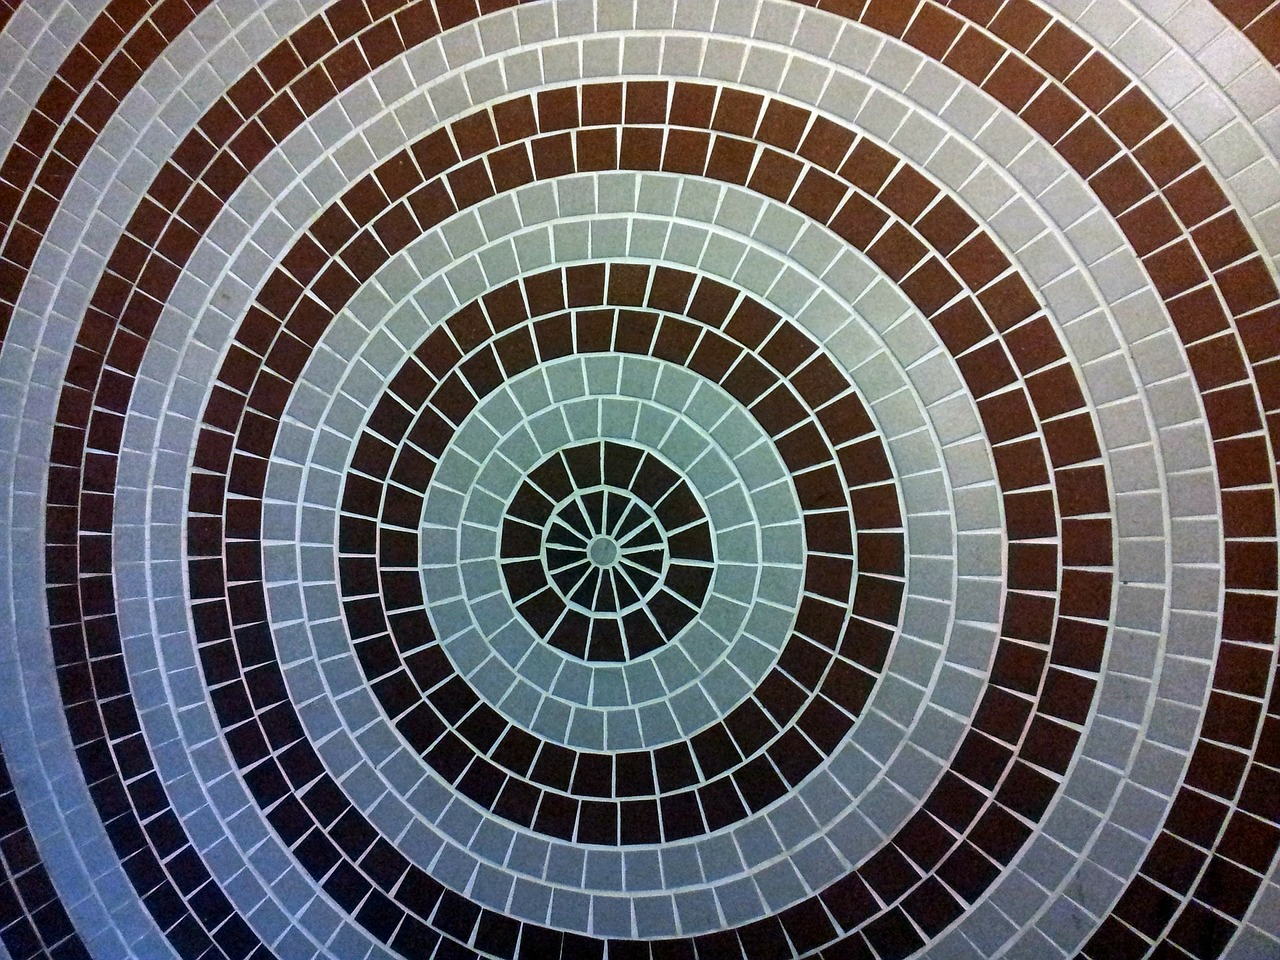 concentric-circle-shape-mosaic-wall-214289_1280